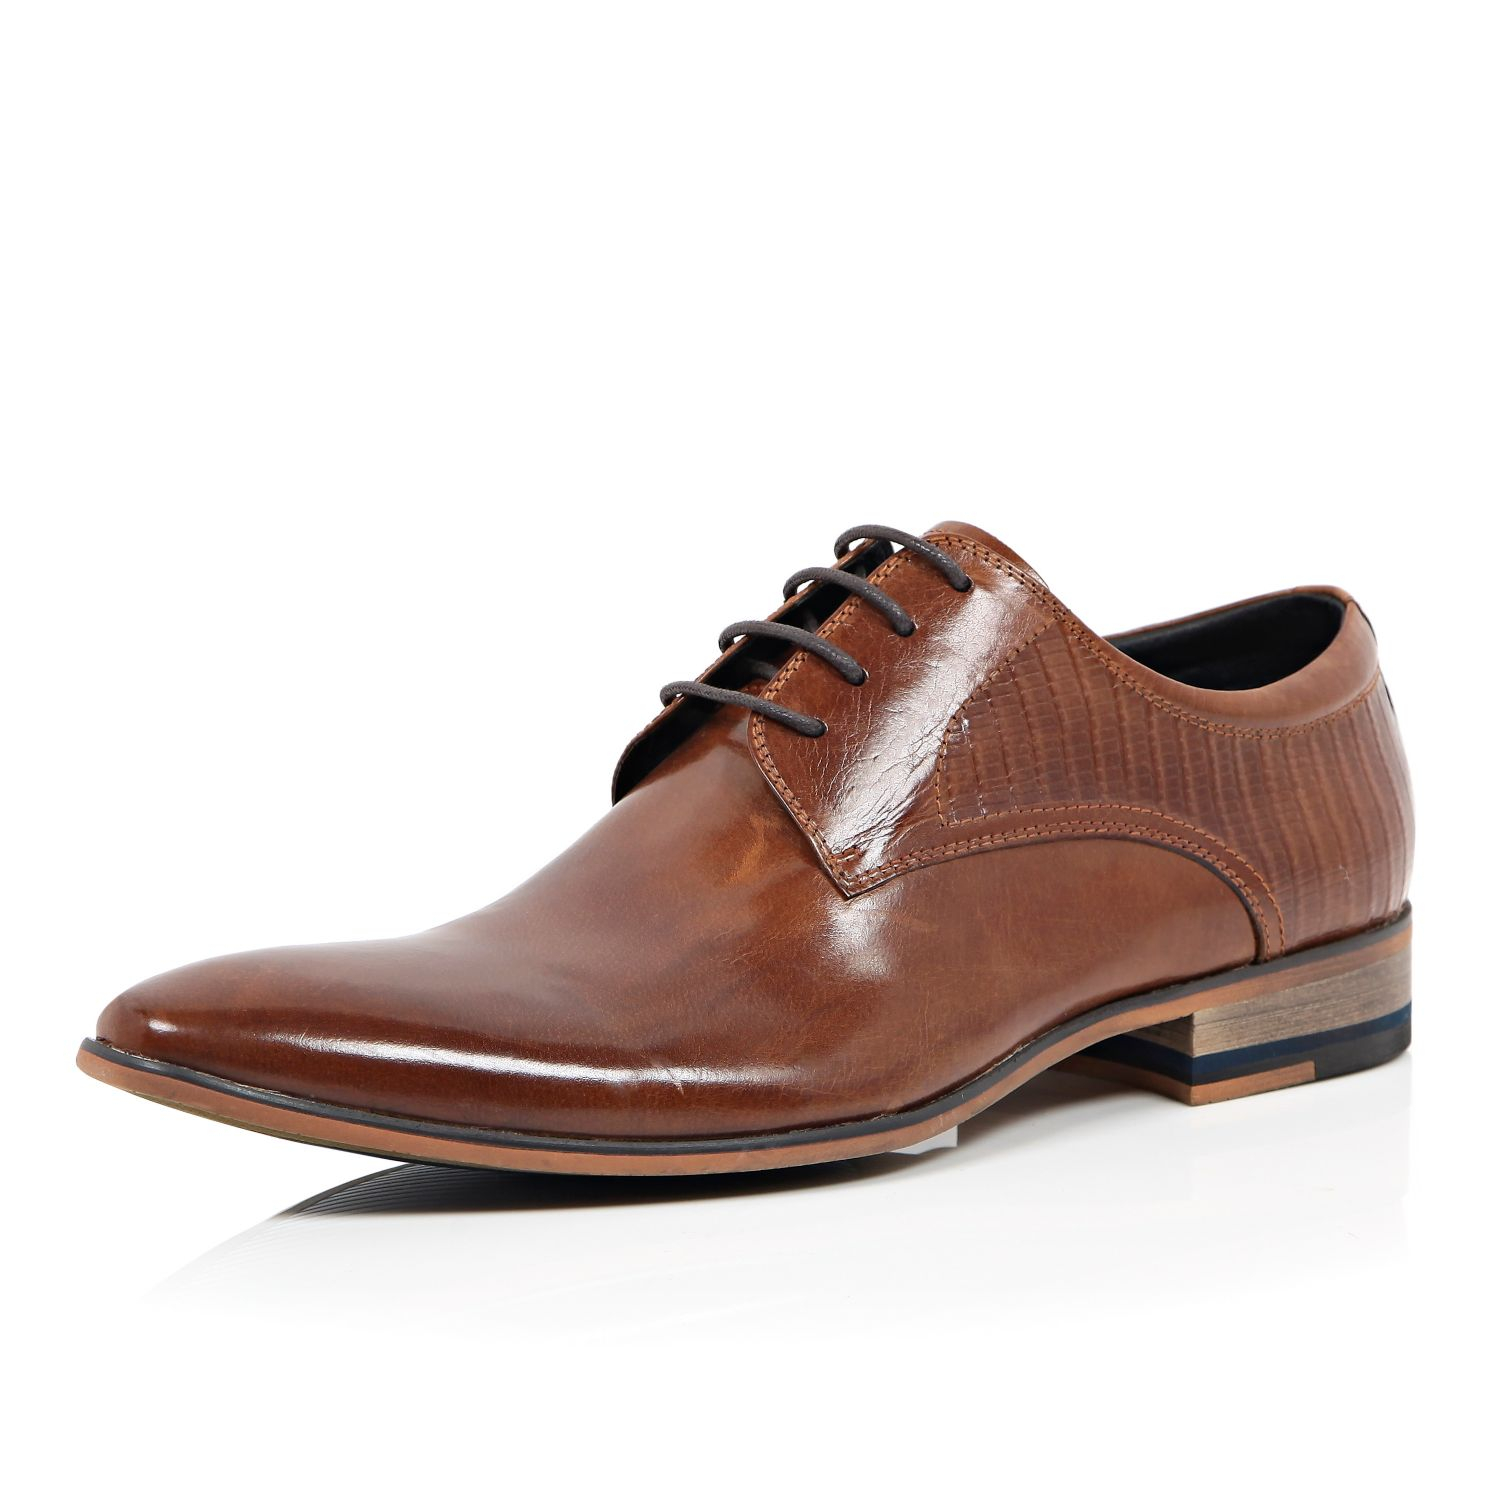 river island brown textured leather formal lace up shoes